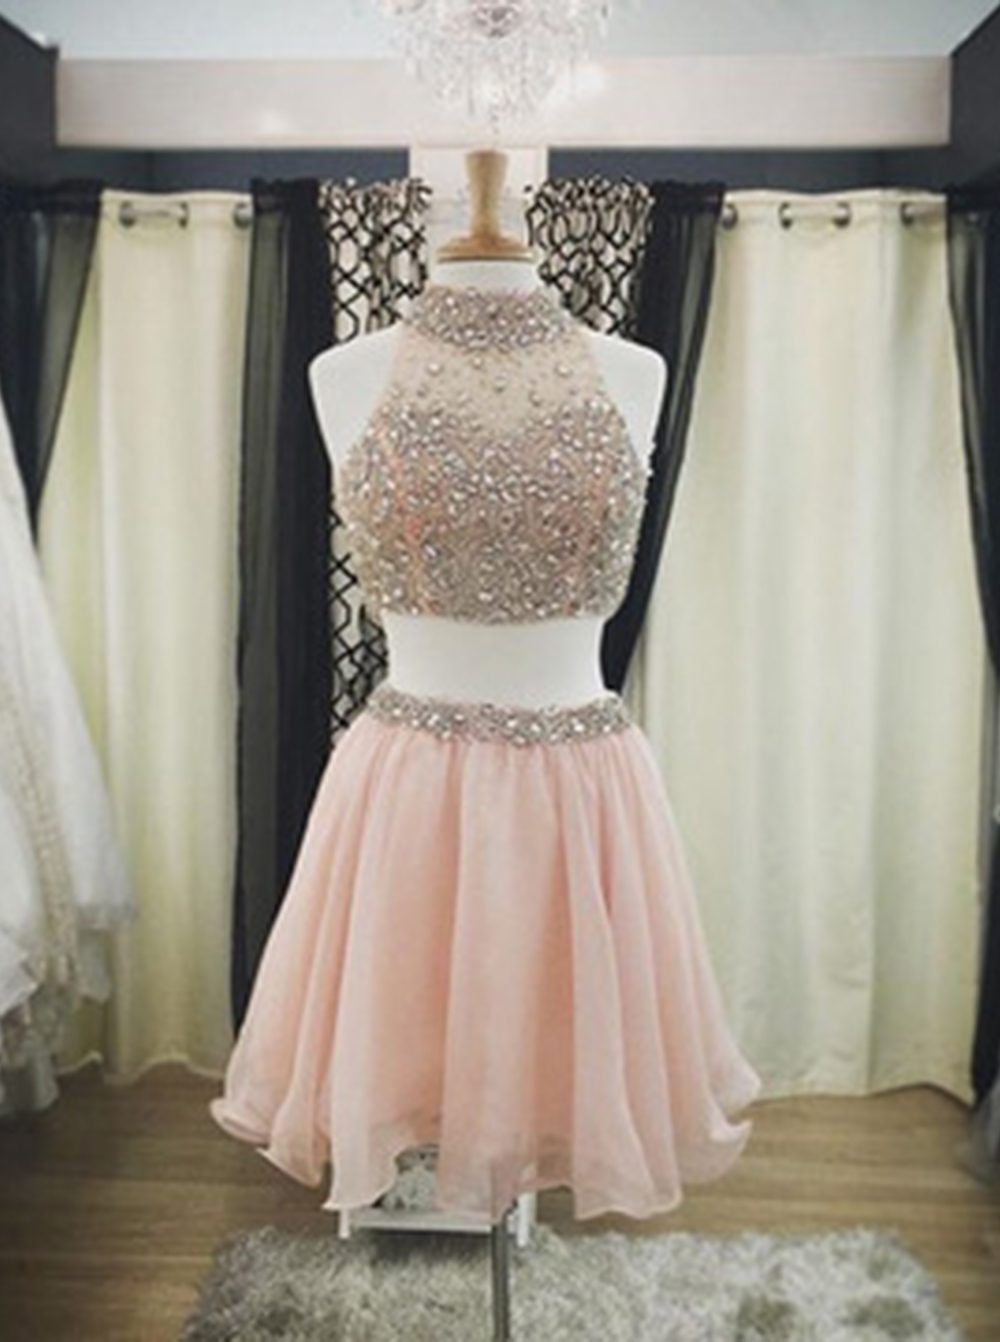 Hot-selling High Neck Two-piece Short Pink Homecoming Dress with Beading Open Back фото